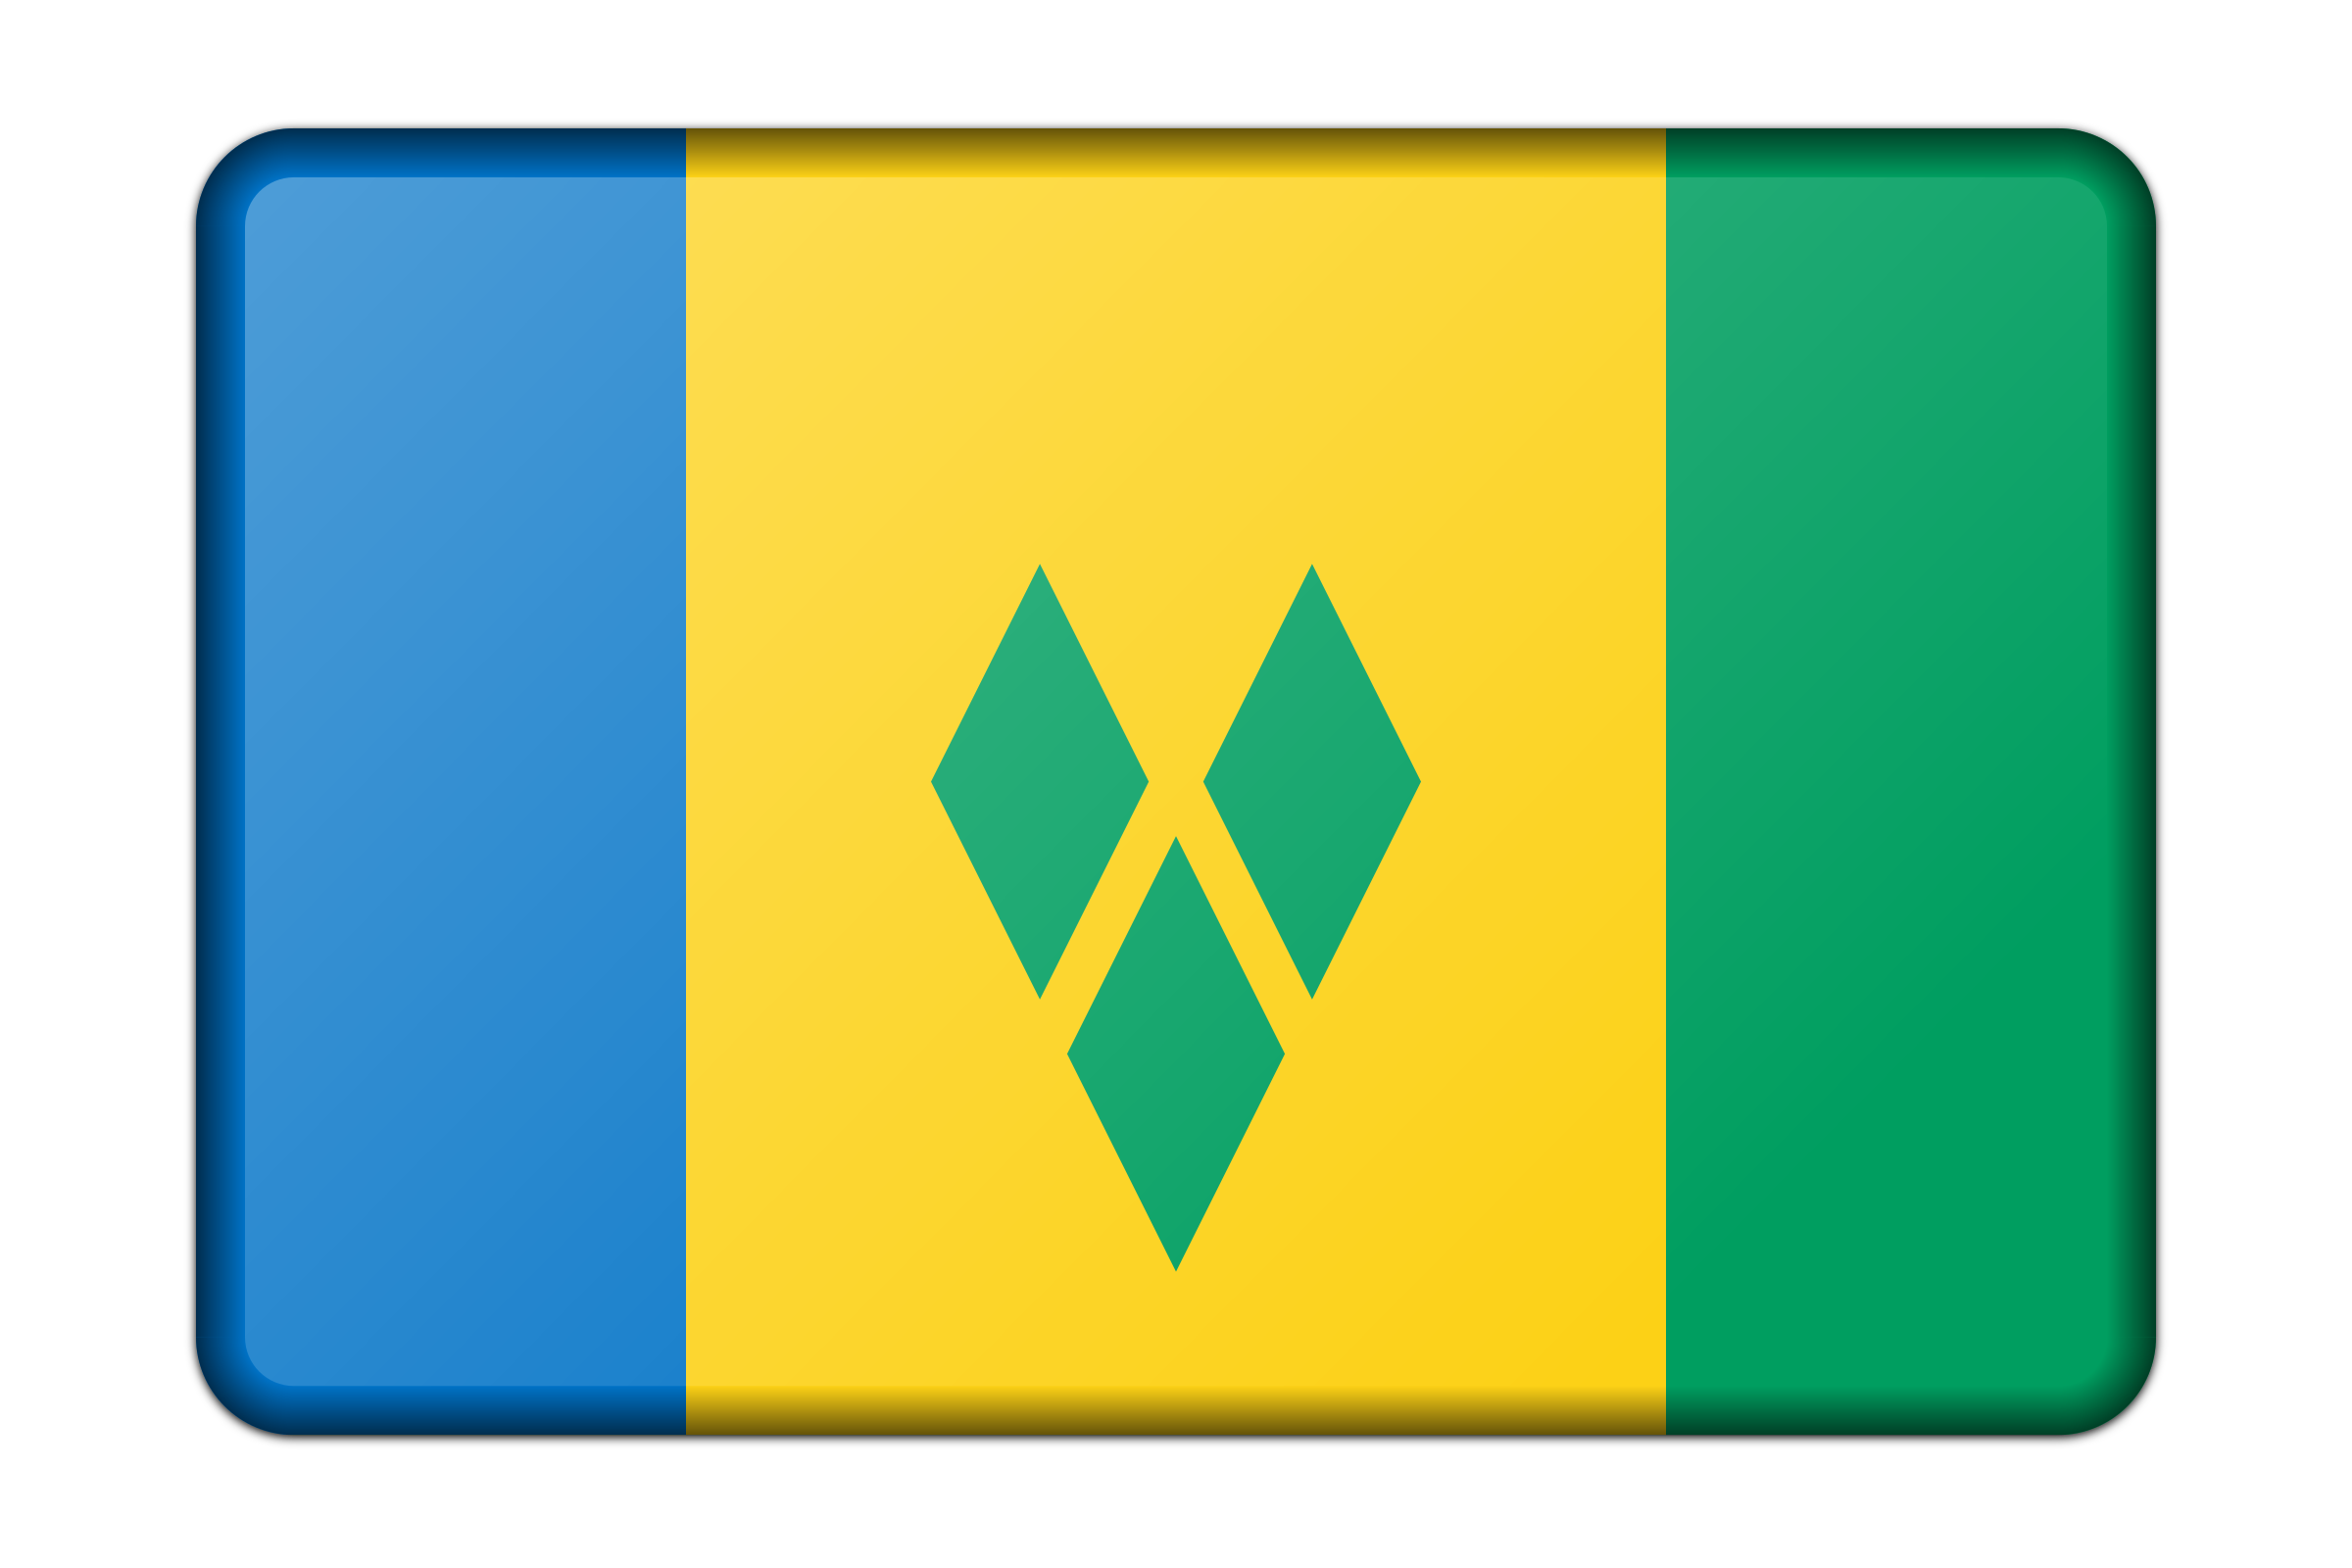 Saint Vincent and the Grenadines flag (bevelled) by Firkin